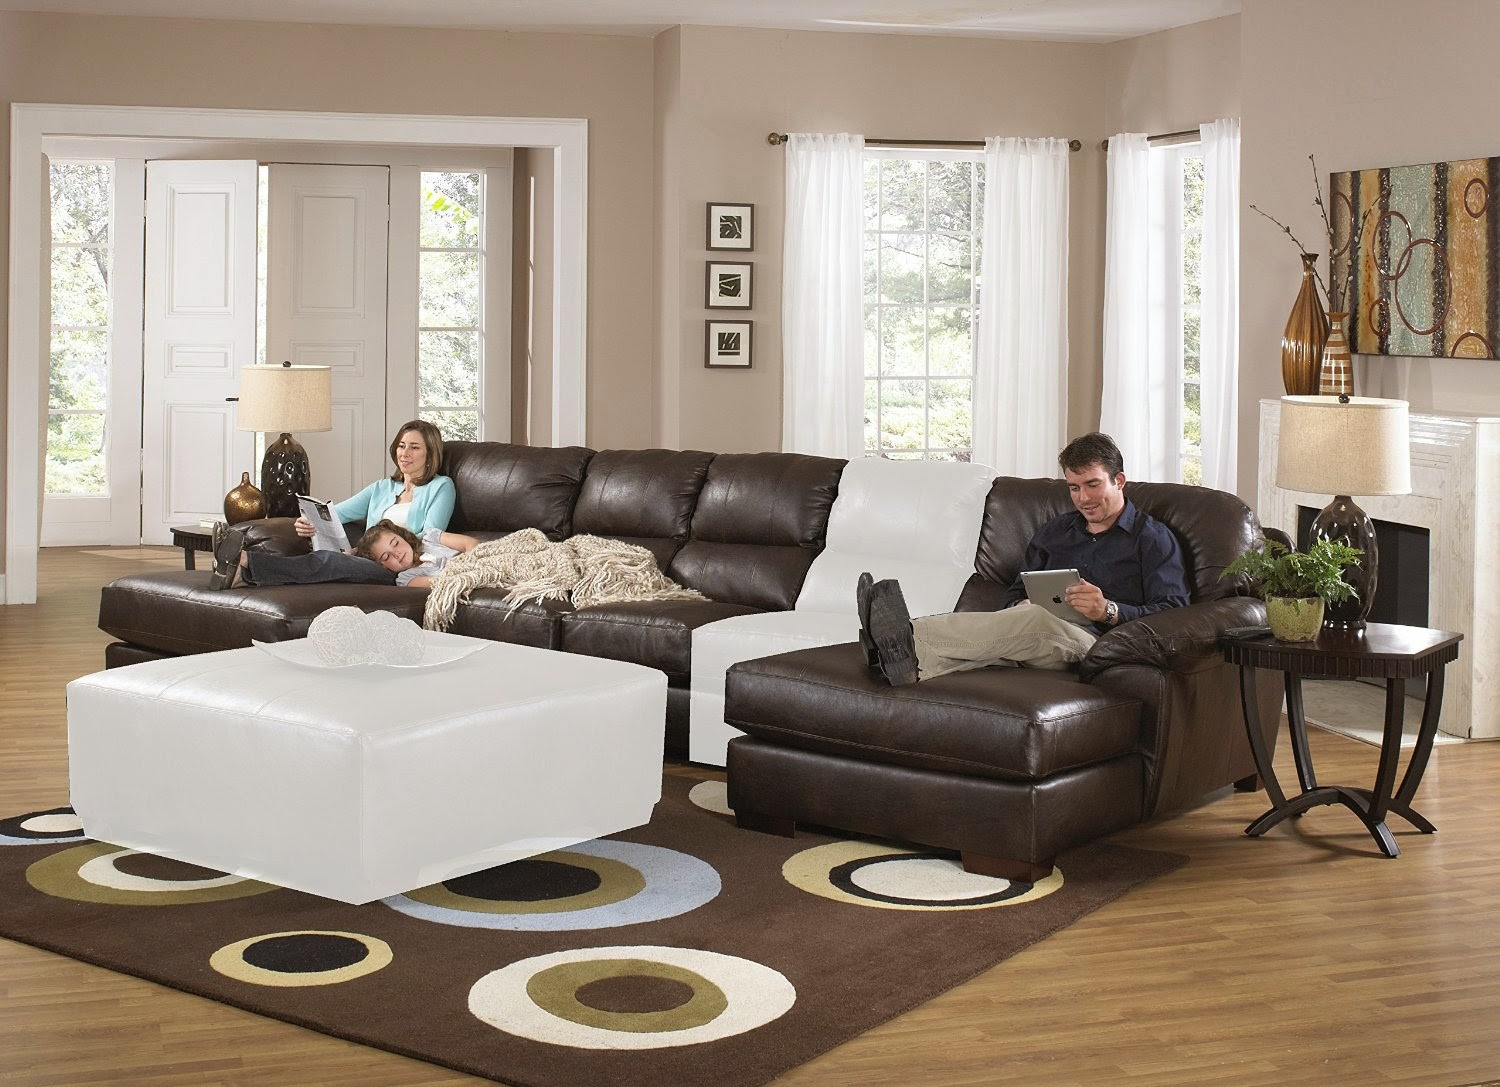 modern sets sectionals comfy ideas couch on living sofa microfiber at loveseat home fill decorating with room costco sale leather sleeper furniture chaise for sofas sectional your